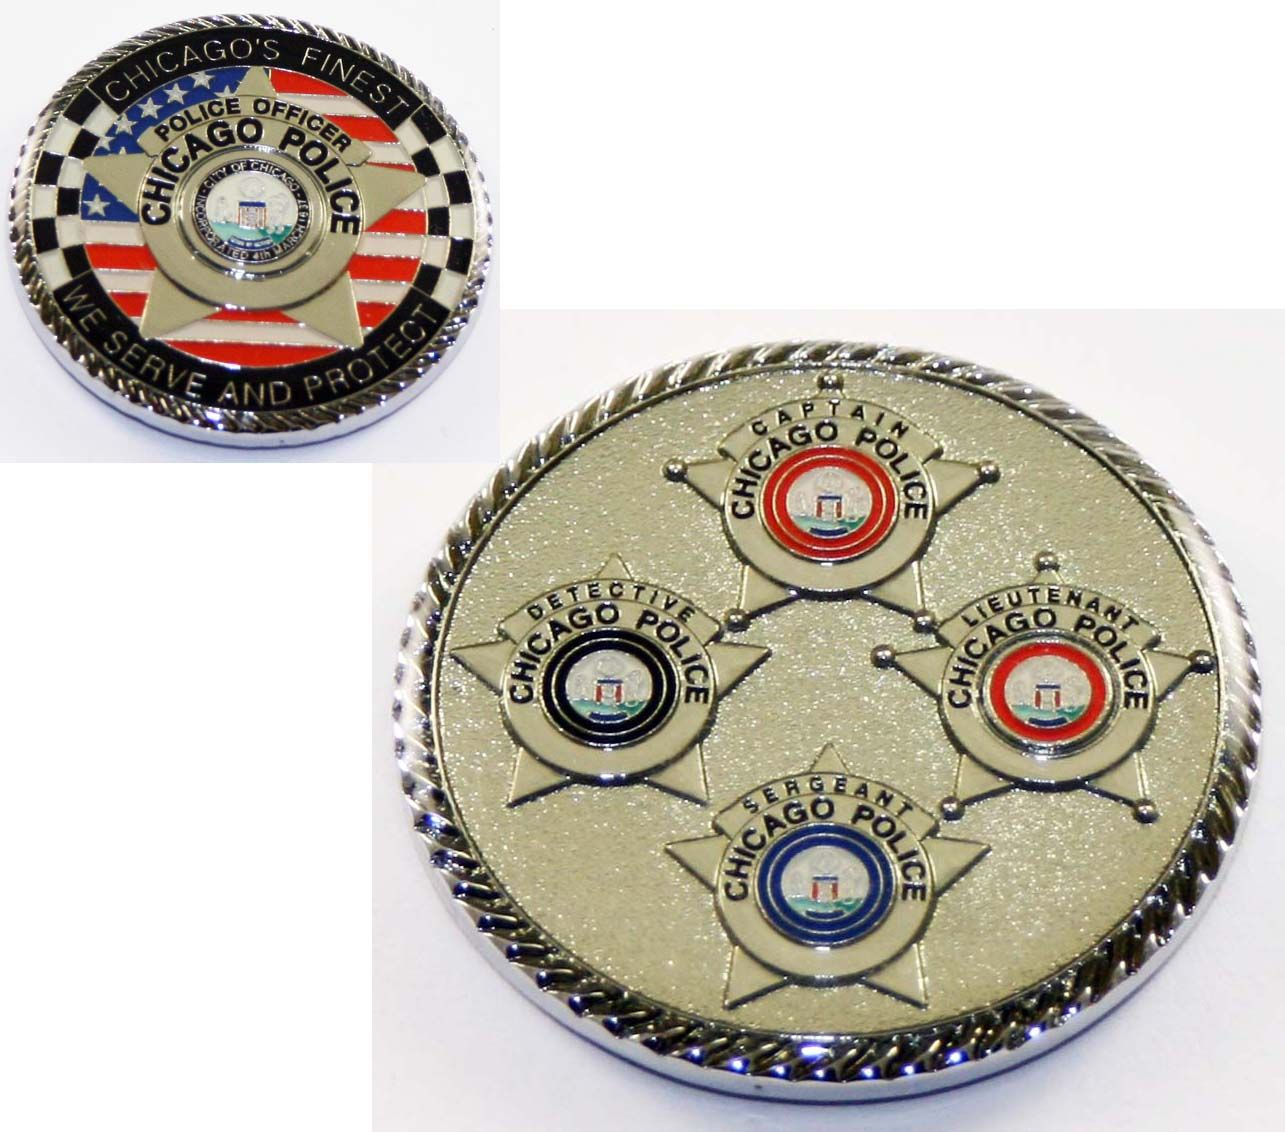 6043 Chicago Star Challenge Coin Chicago Fire Department and Chicago Police Department gifts.